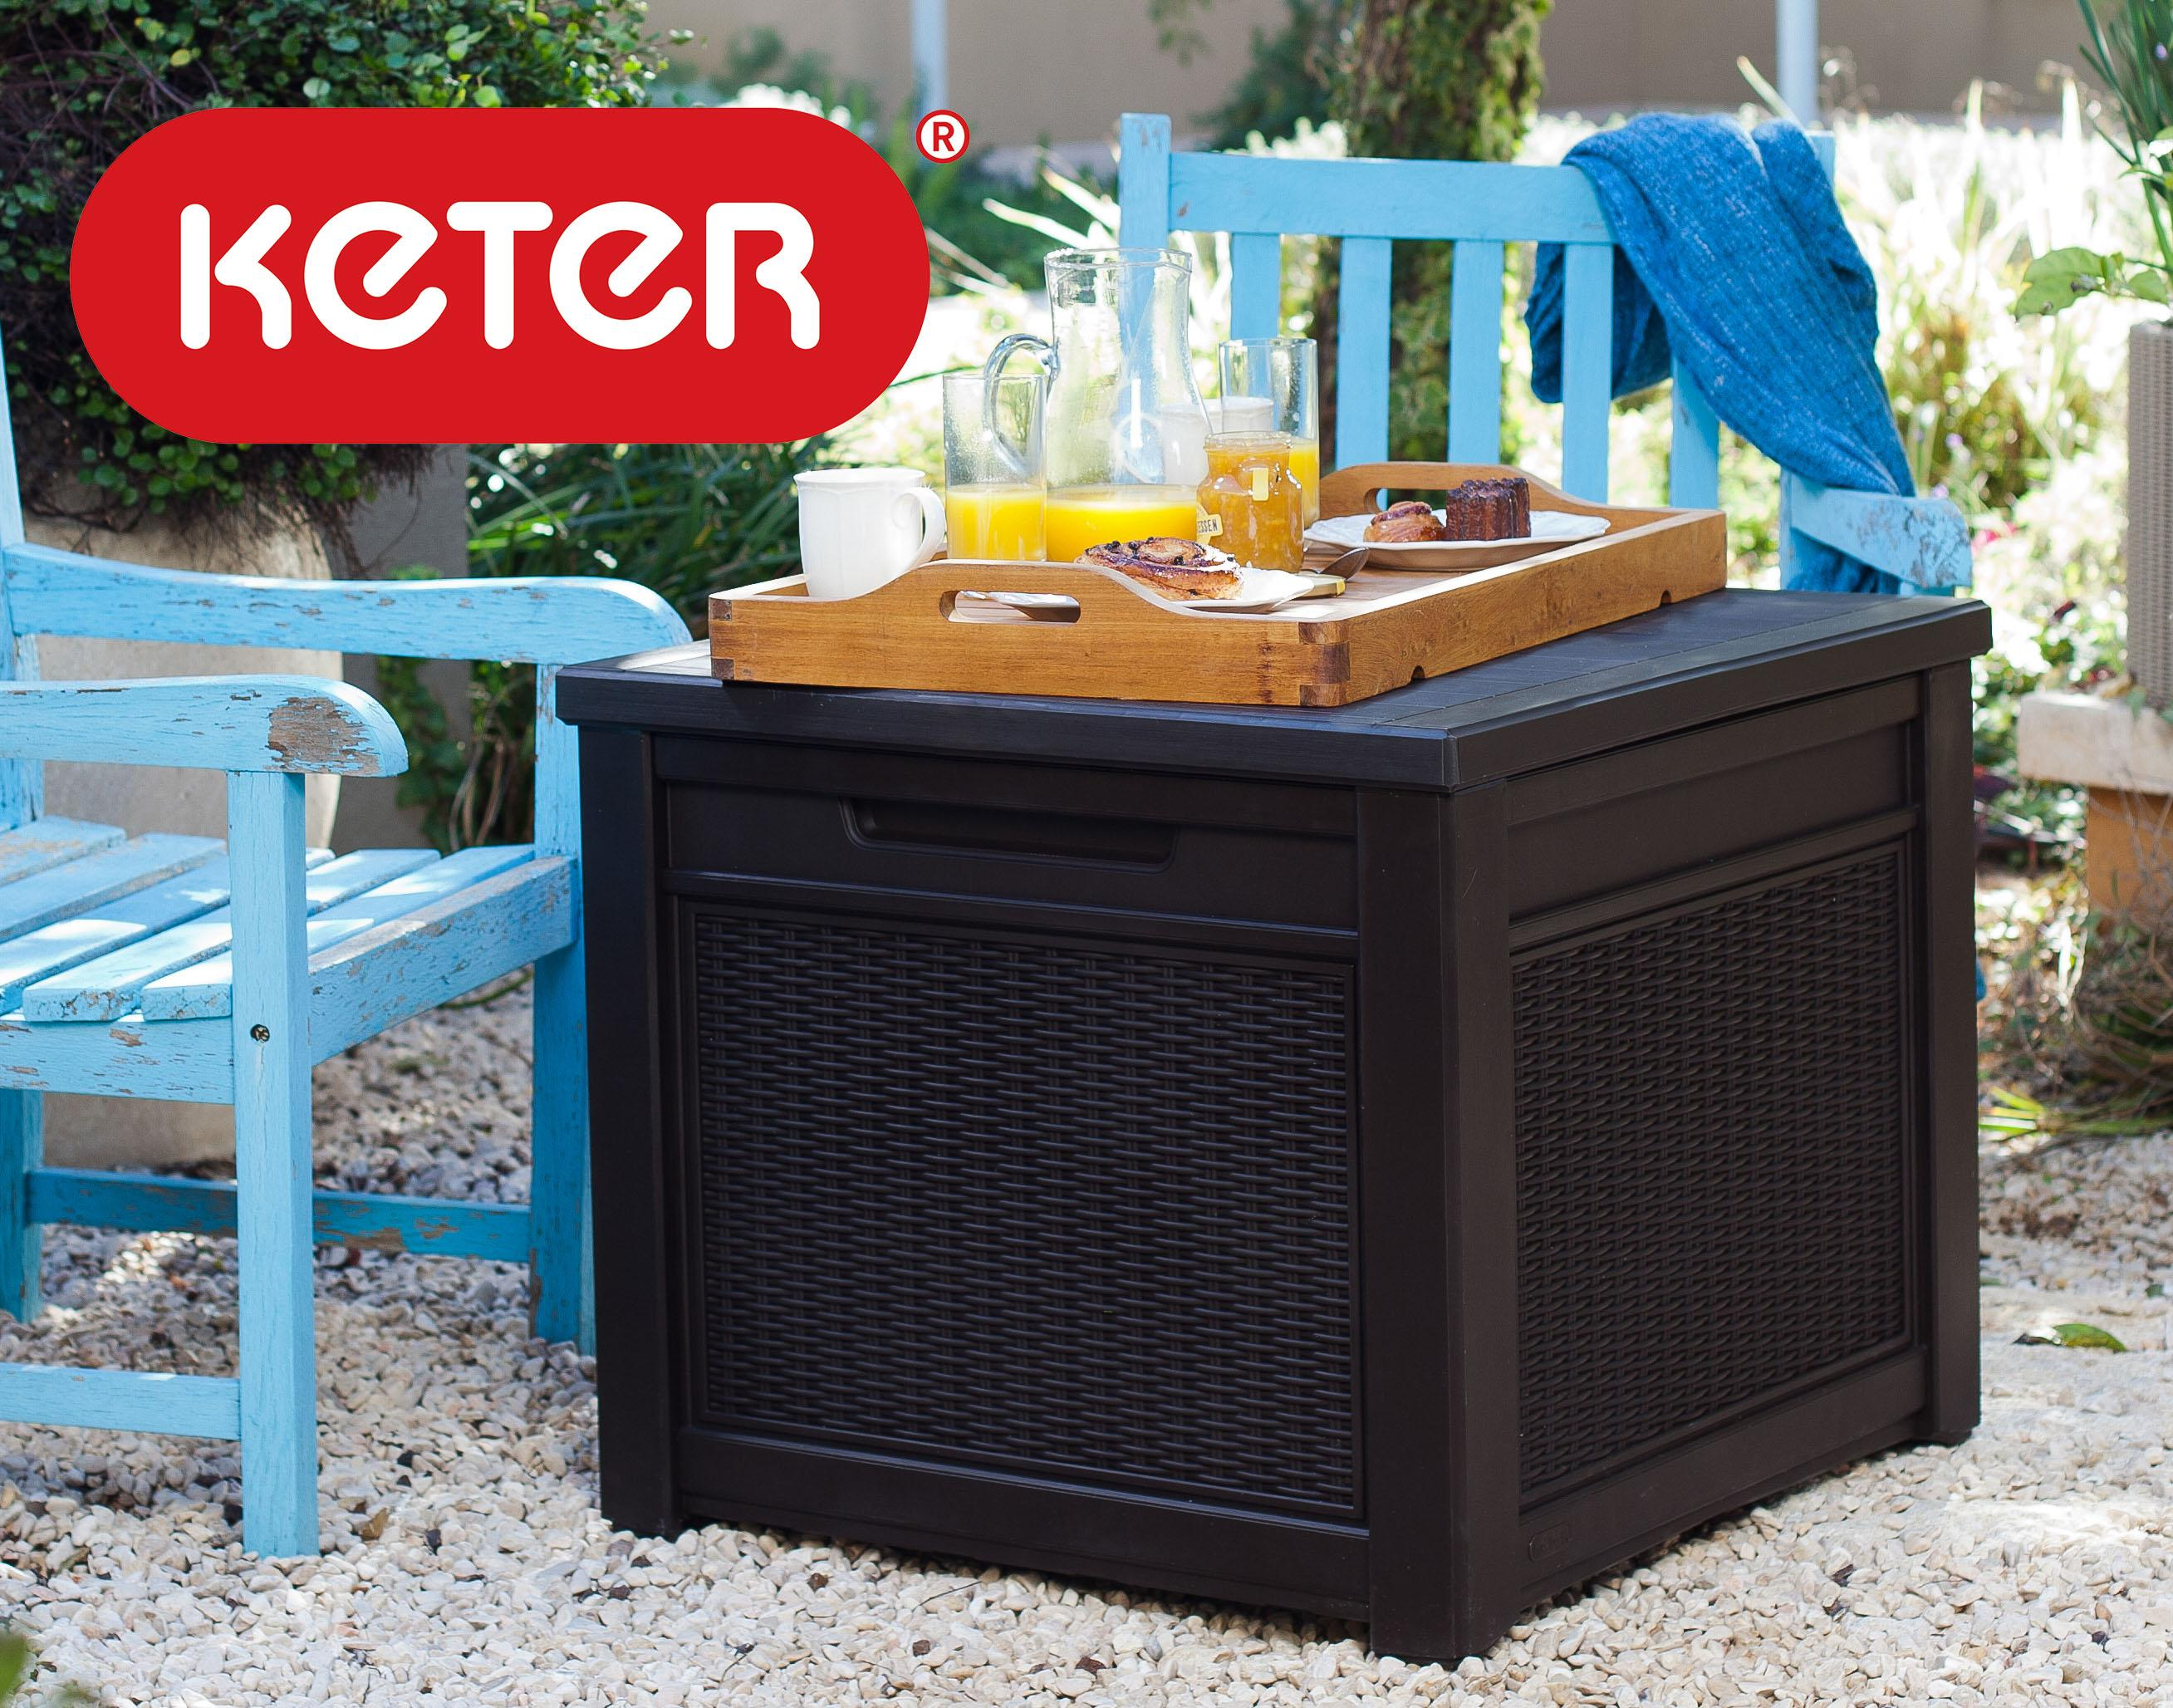 Keter Novel Plastic Deck Storage Container Box Outdoor Patio Fur